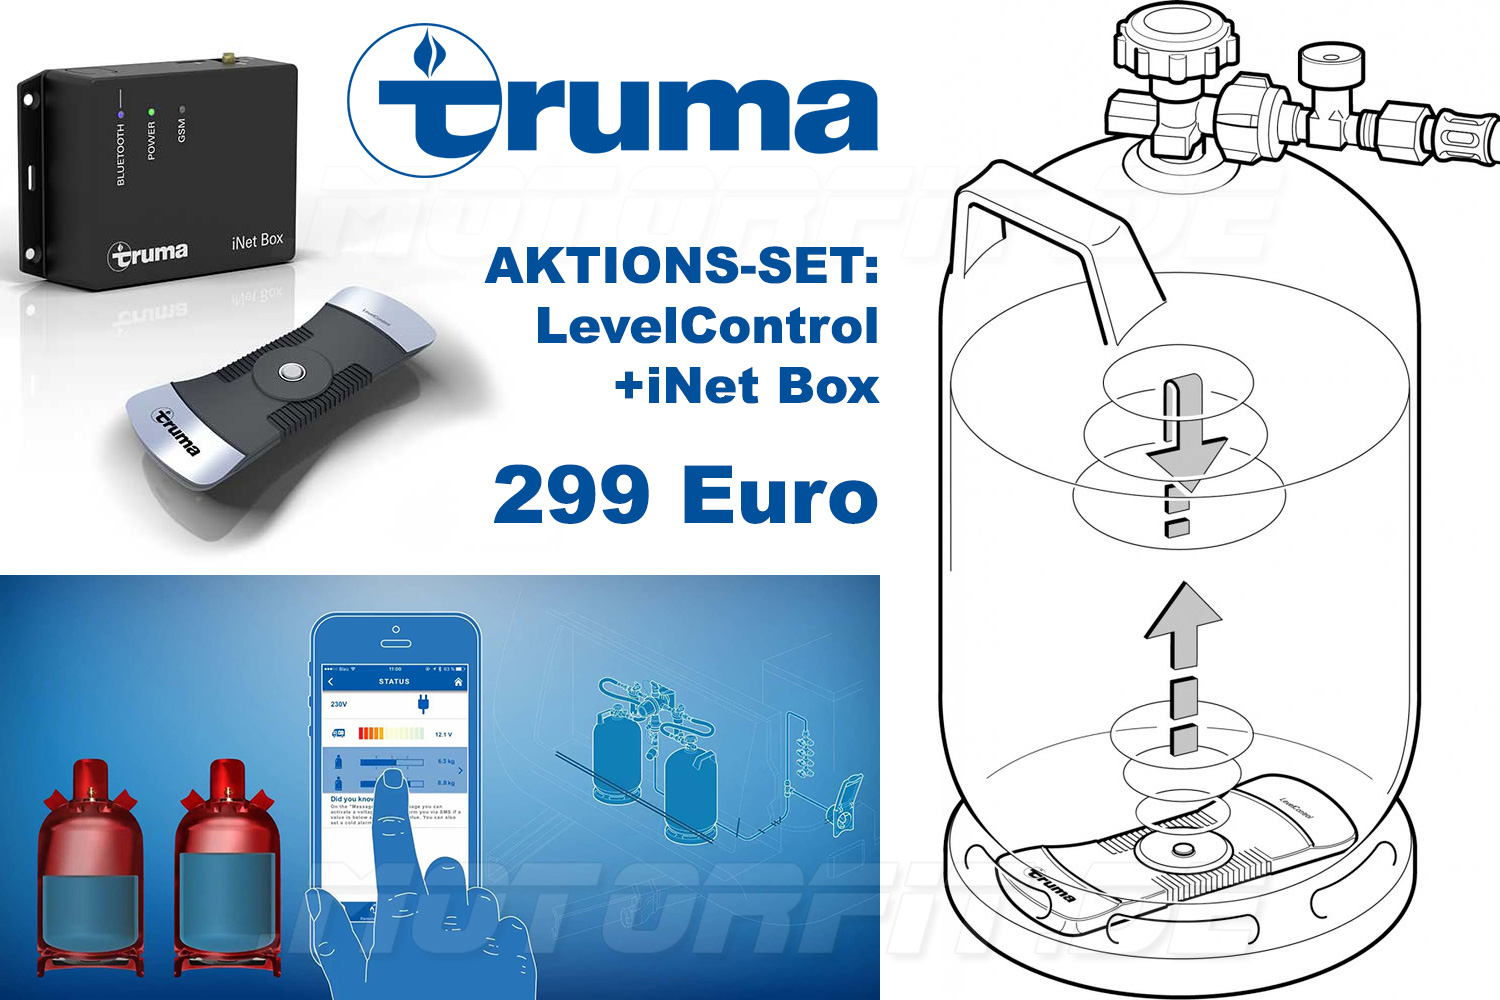 aktions set zum sonderpreis truma levelcontrol inet box. Black Bedroom Furniture Sets. Home Design Ideas